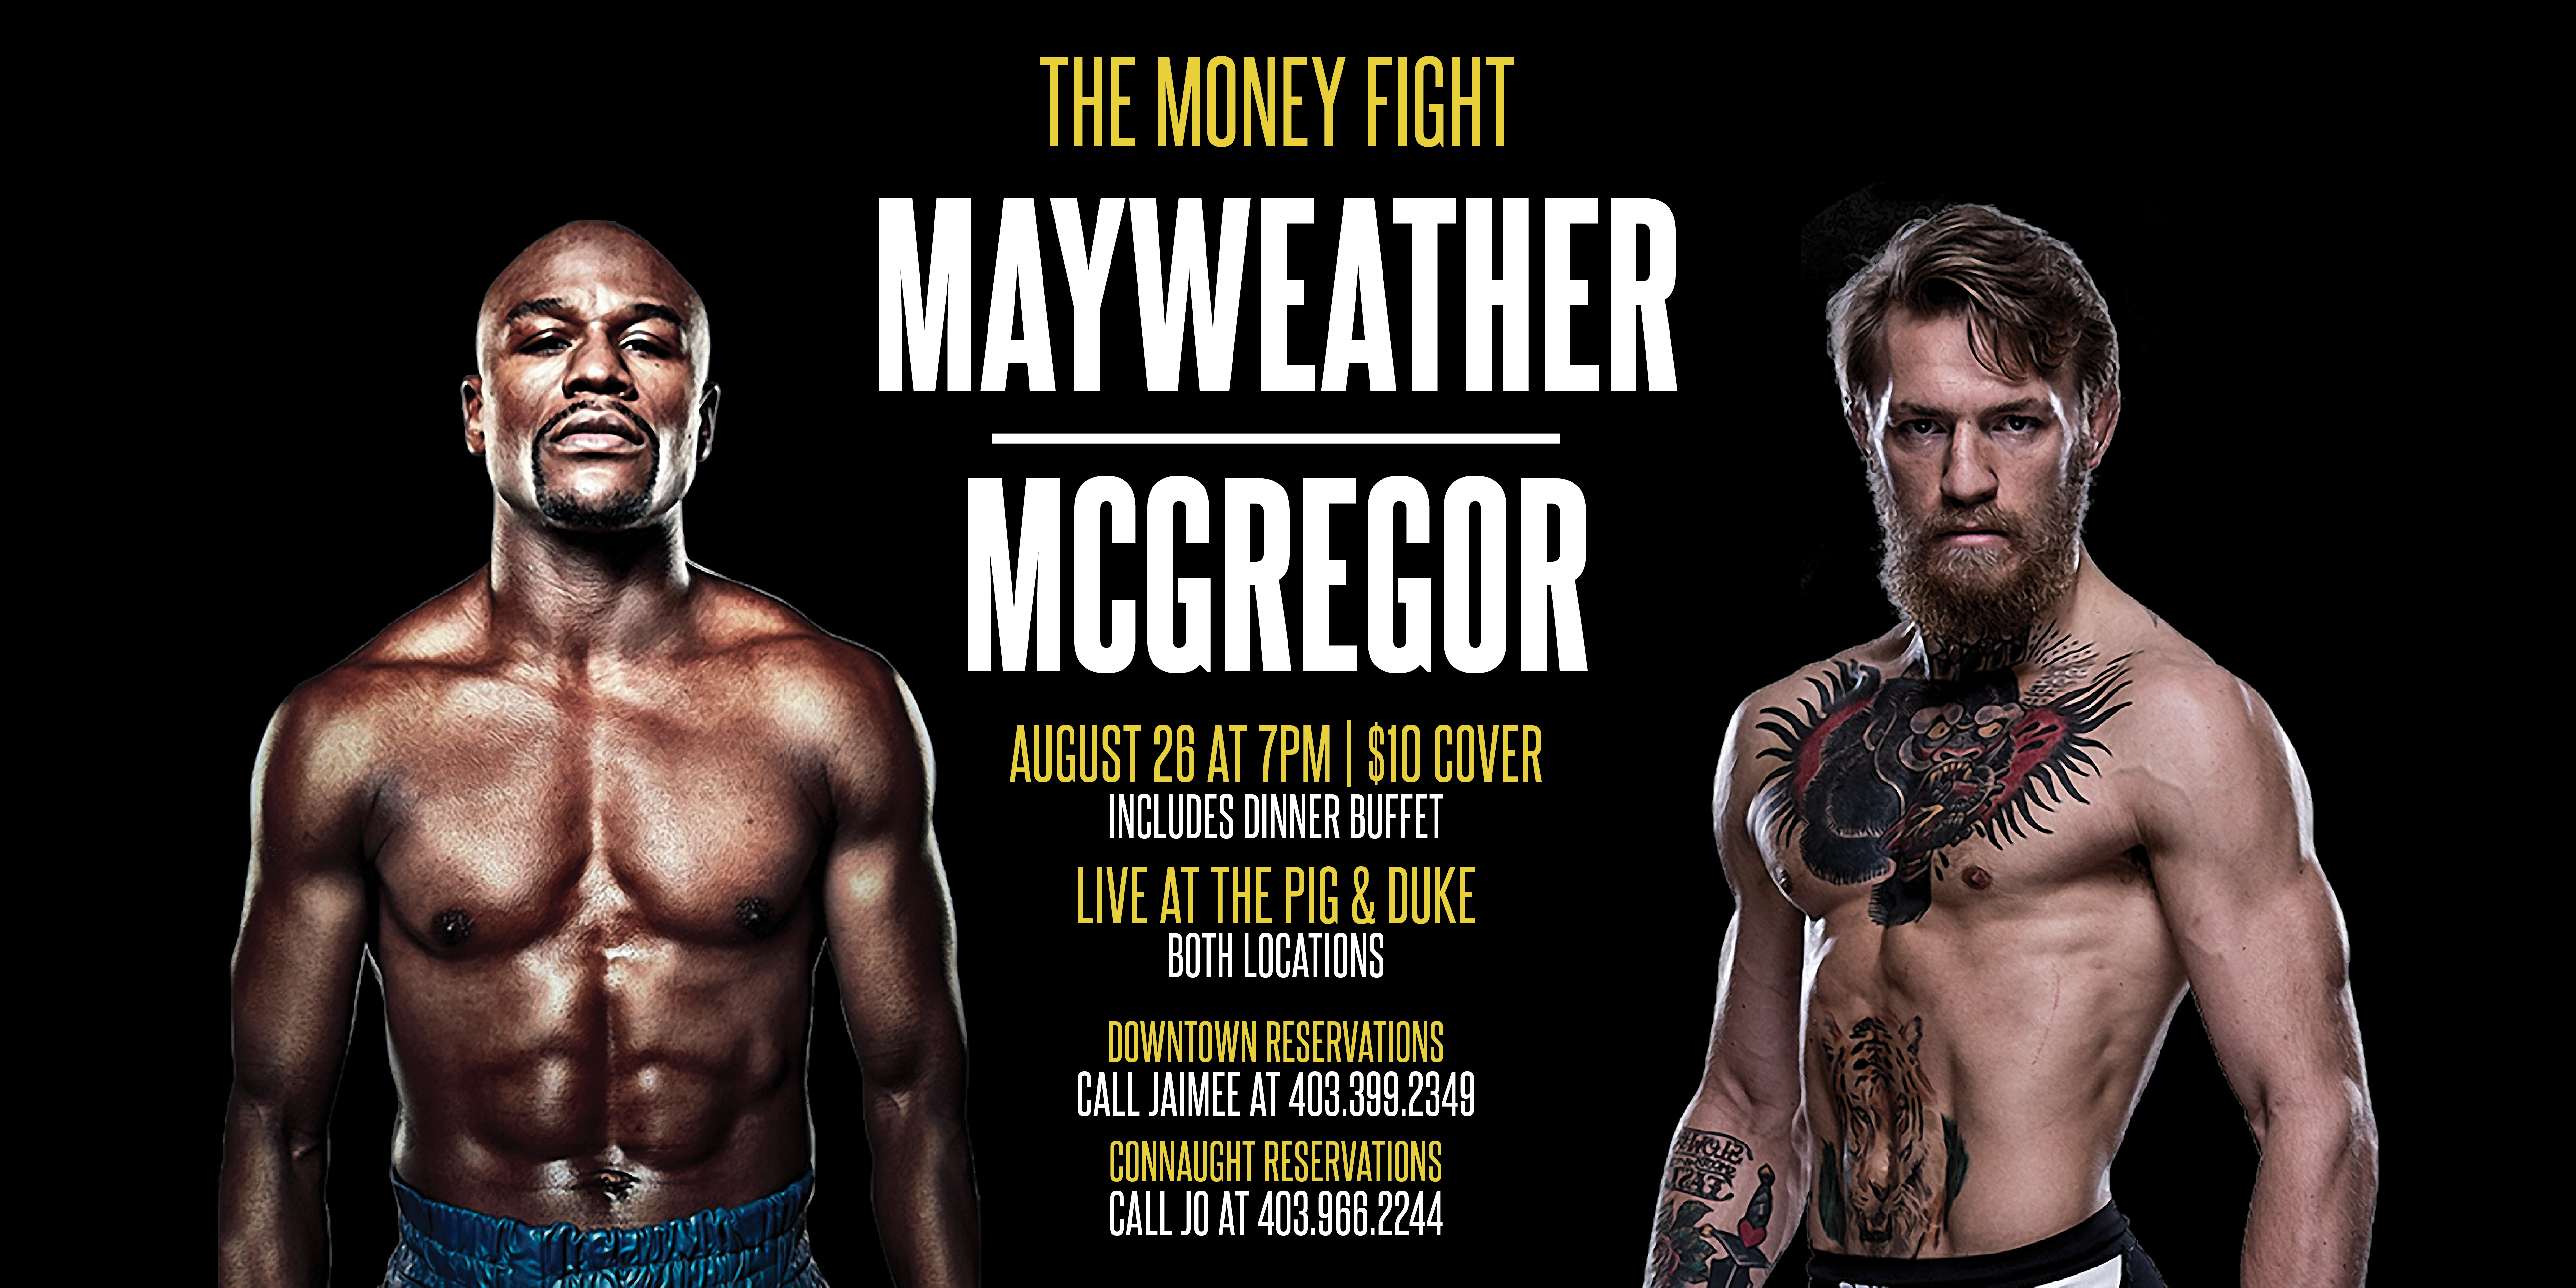 p&d_Mayweather_boxing_Web